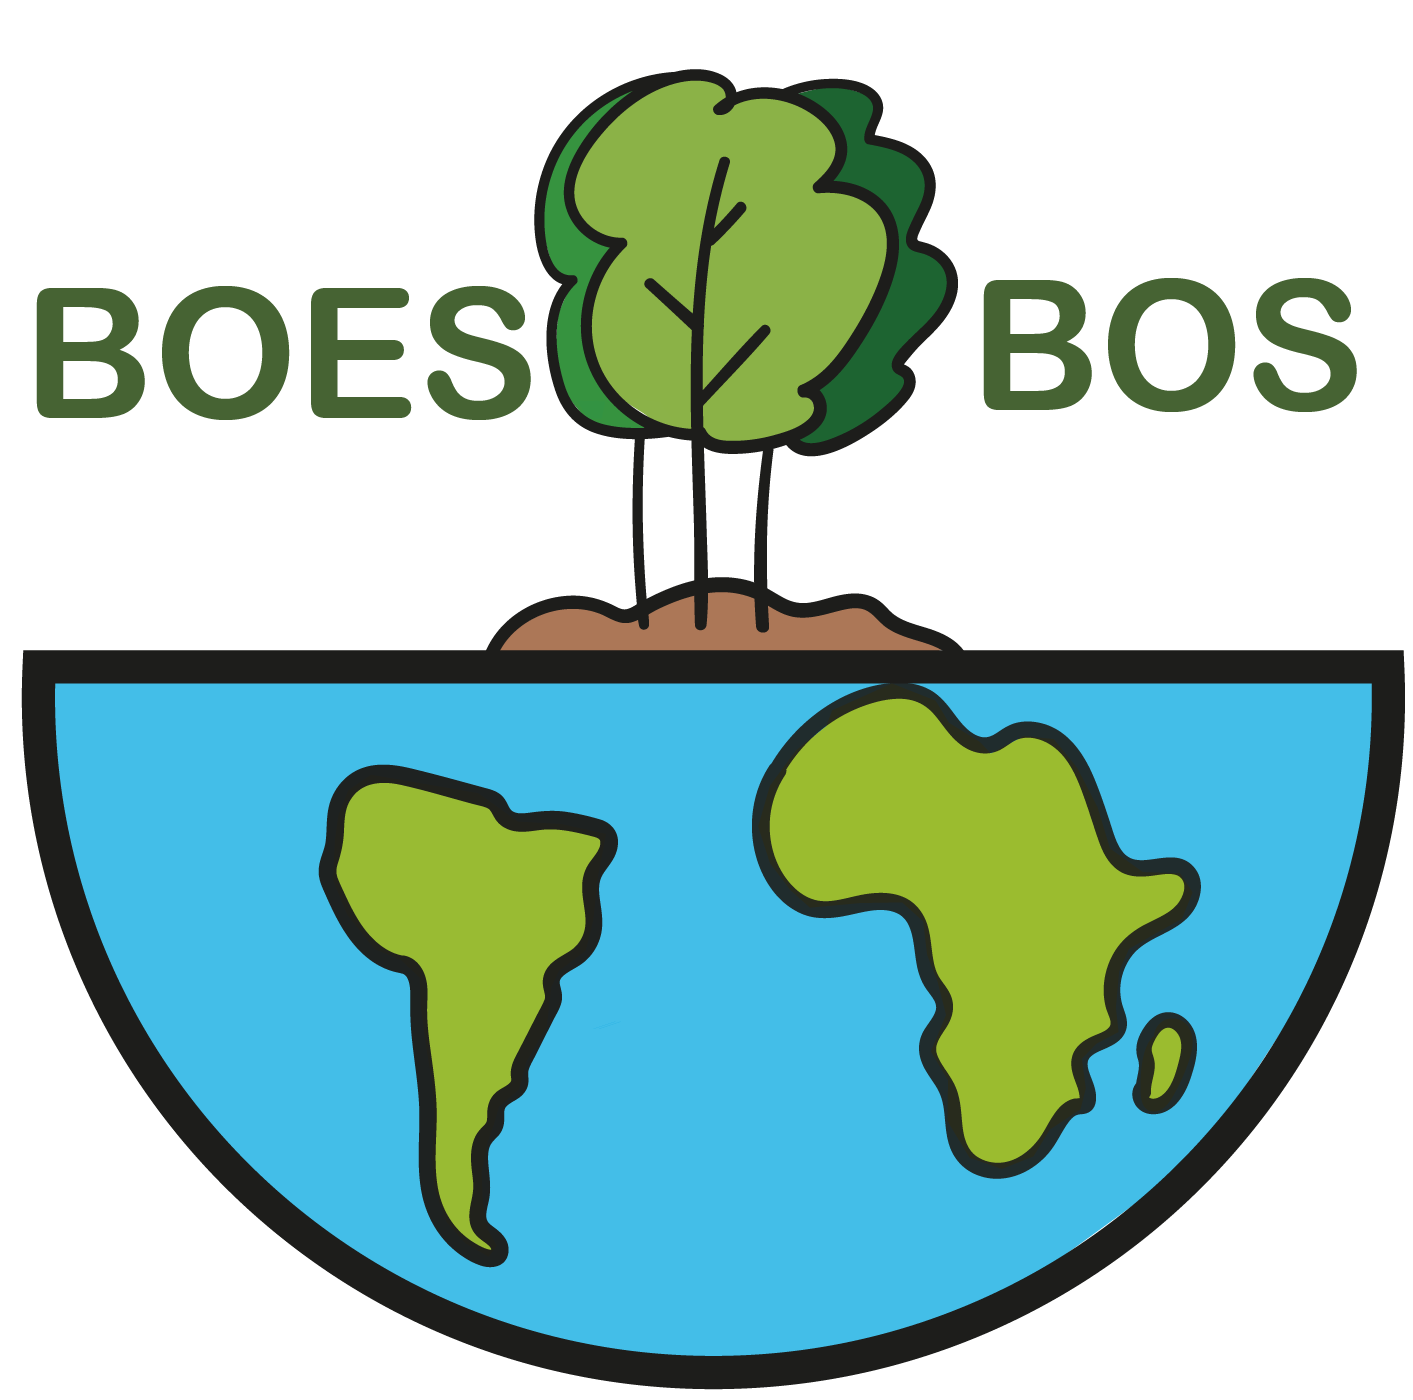 Stichting Boes Bos